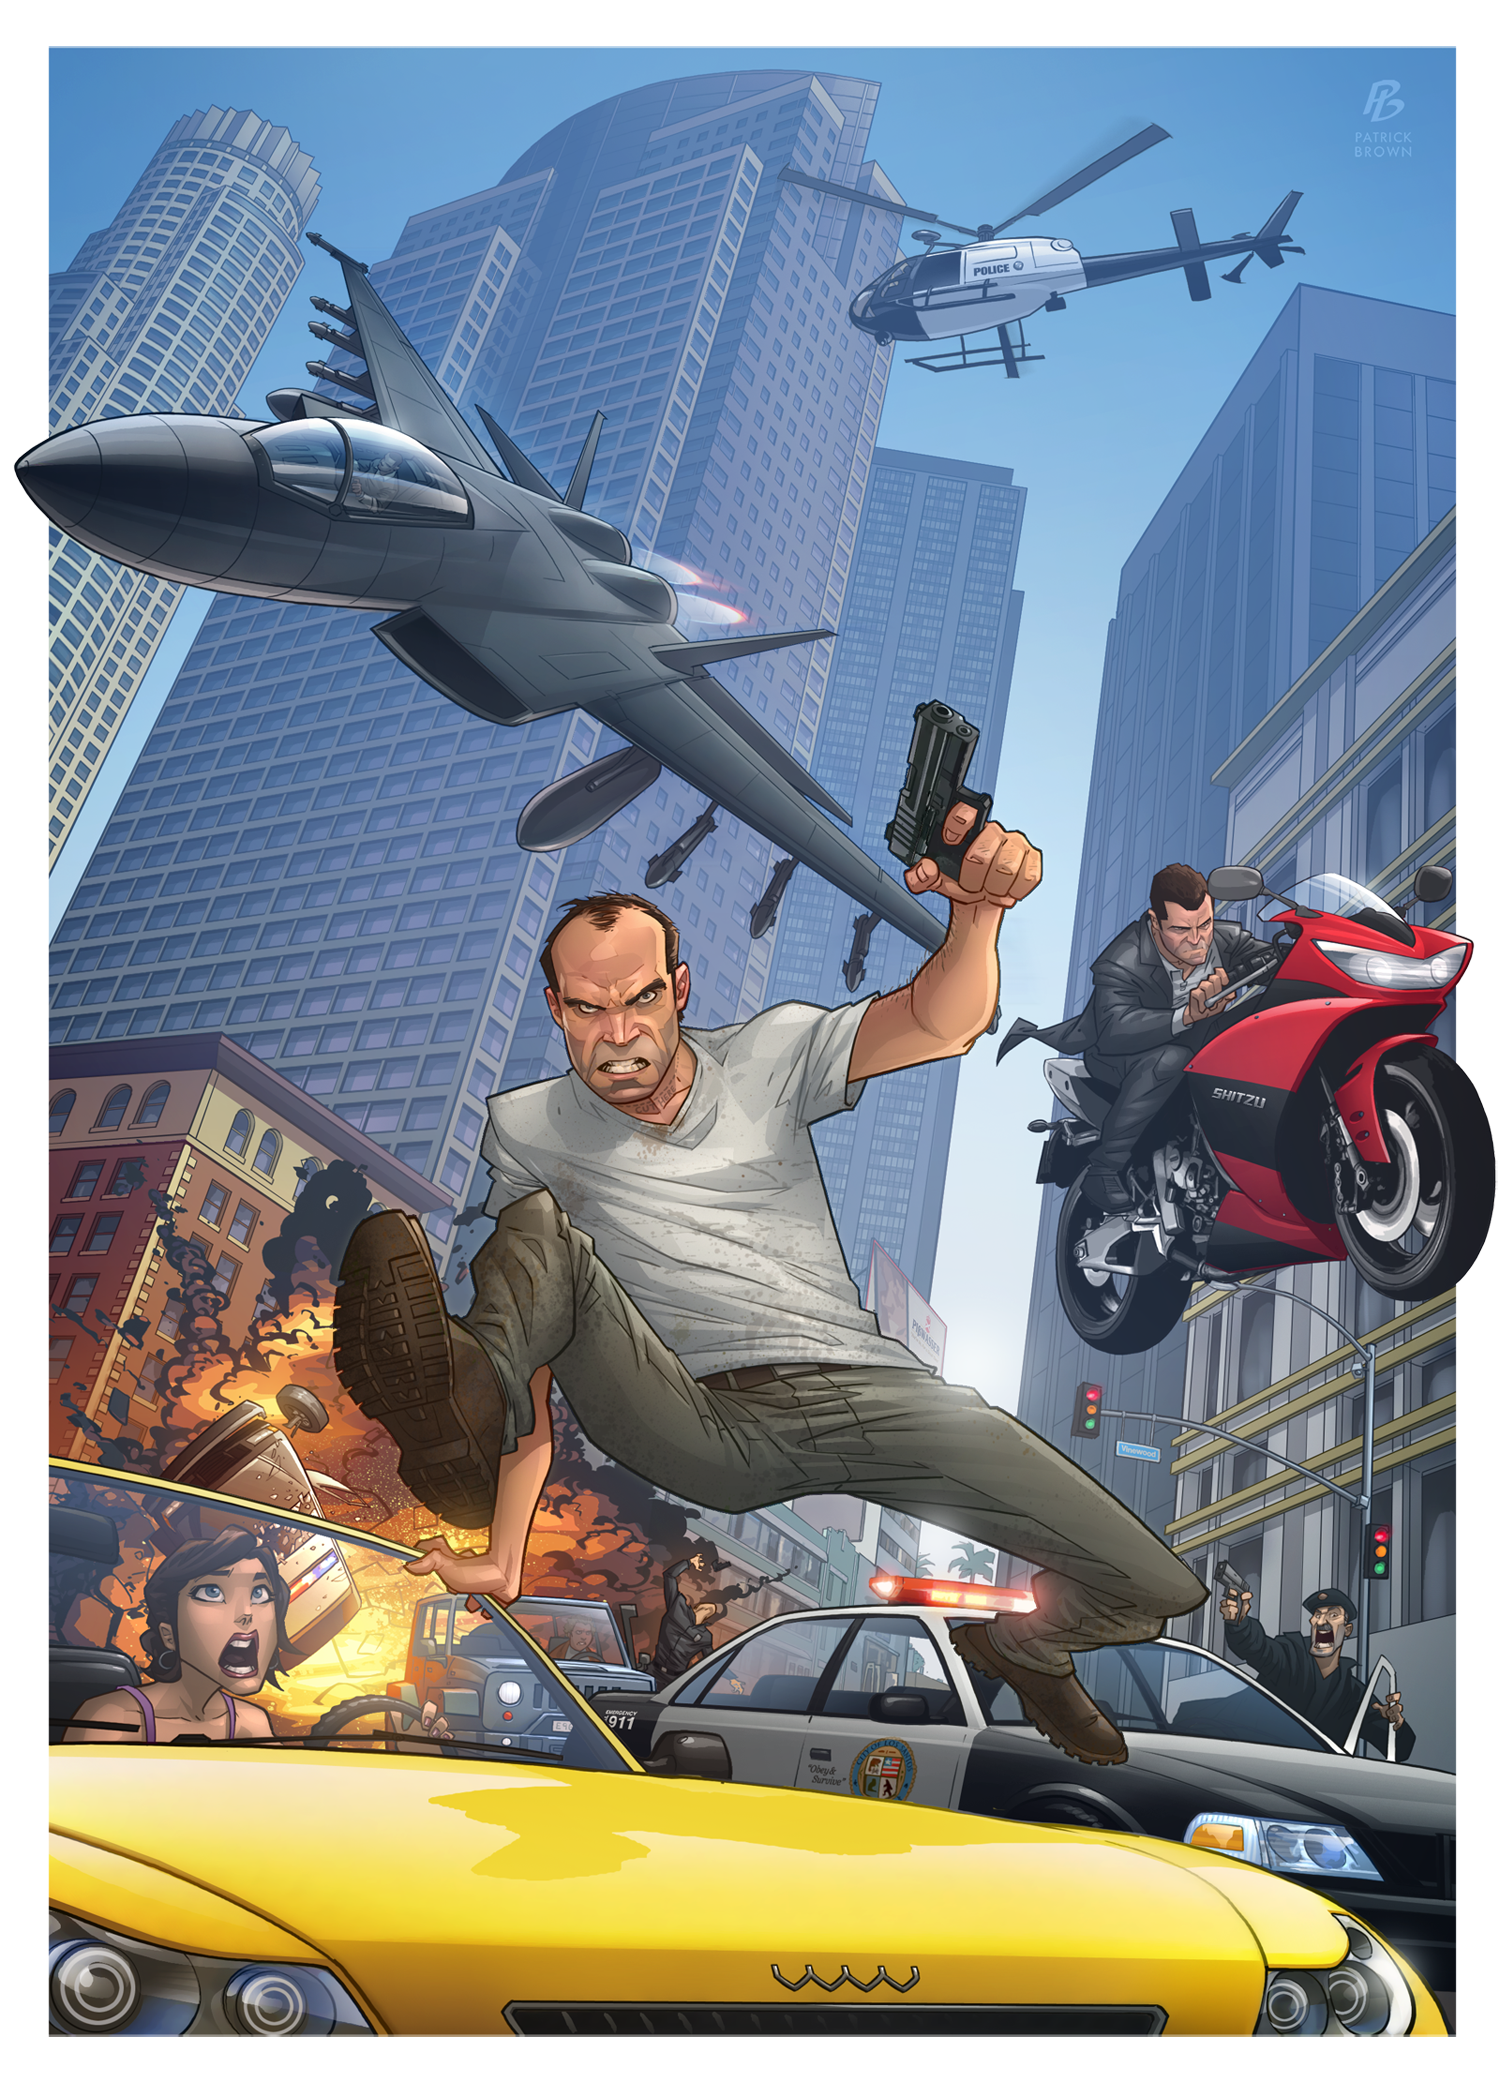 patrick-brown-first-gta-v-artwork.png